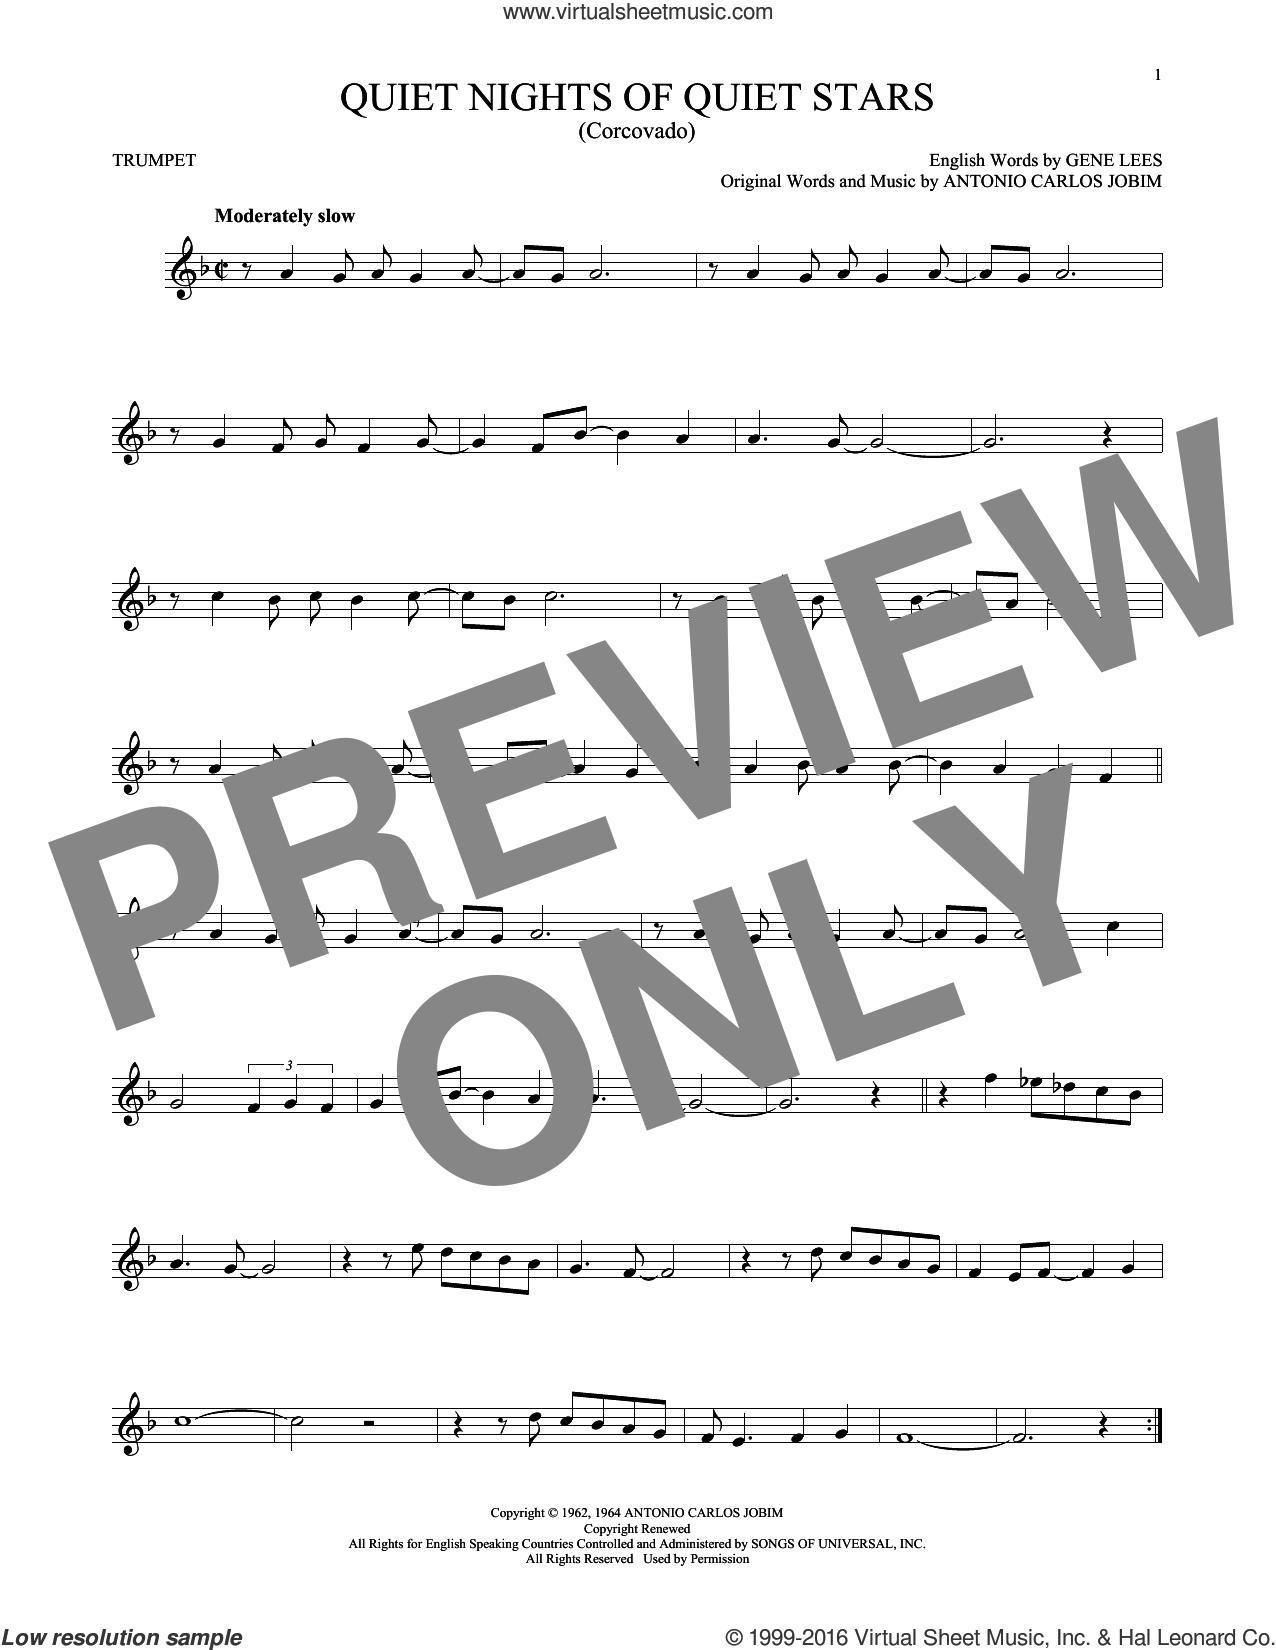 Quiet Nights Of Quiet Stars (Corcovado) sheet music for trumpet solo by Andy Williams, Antonio Carlos Jobim and Eugene John Lees, intermediate